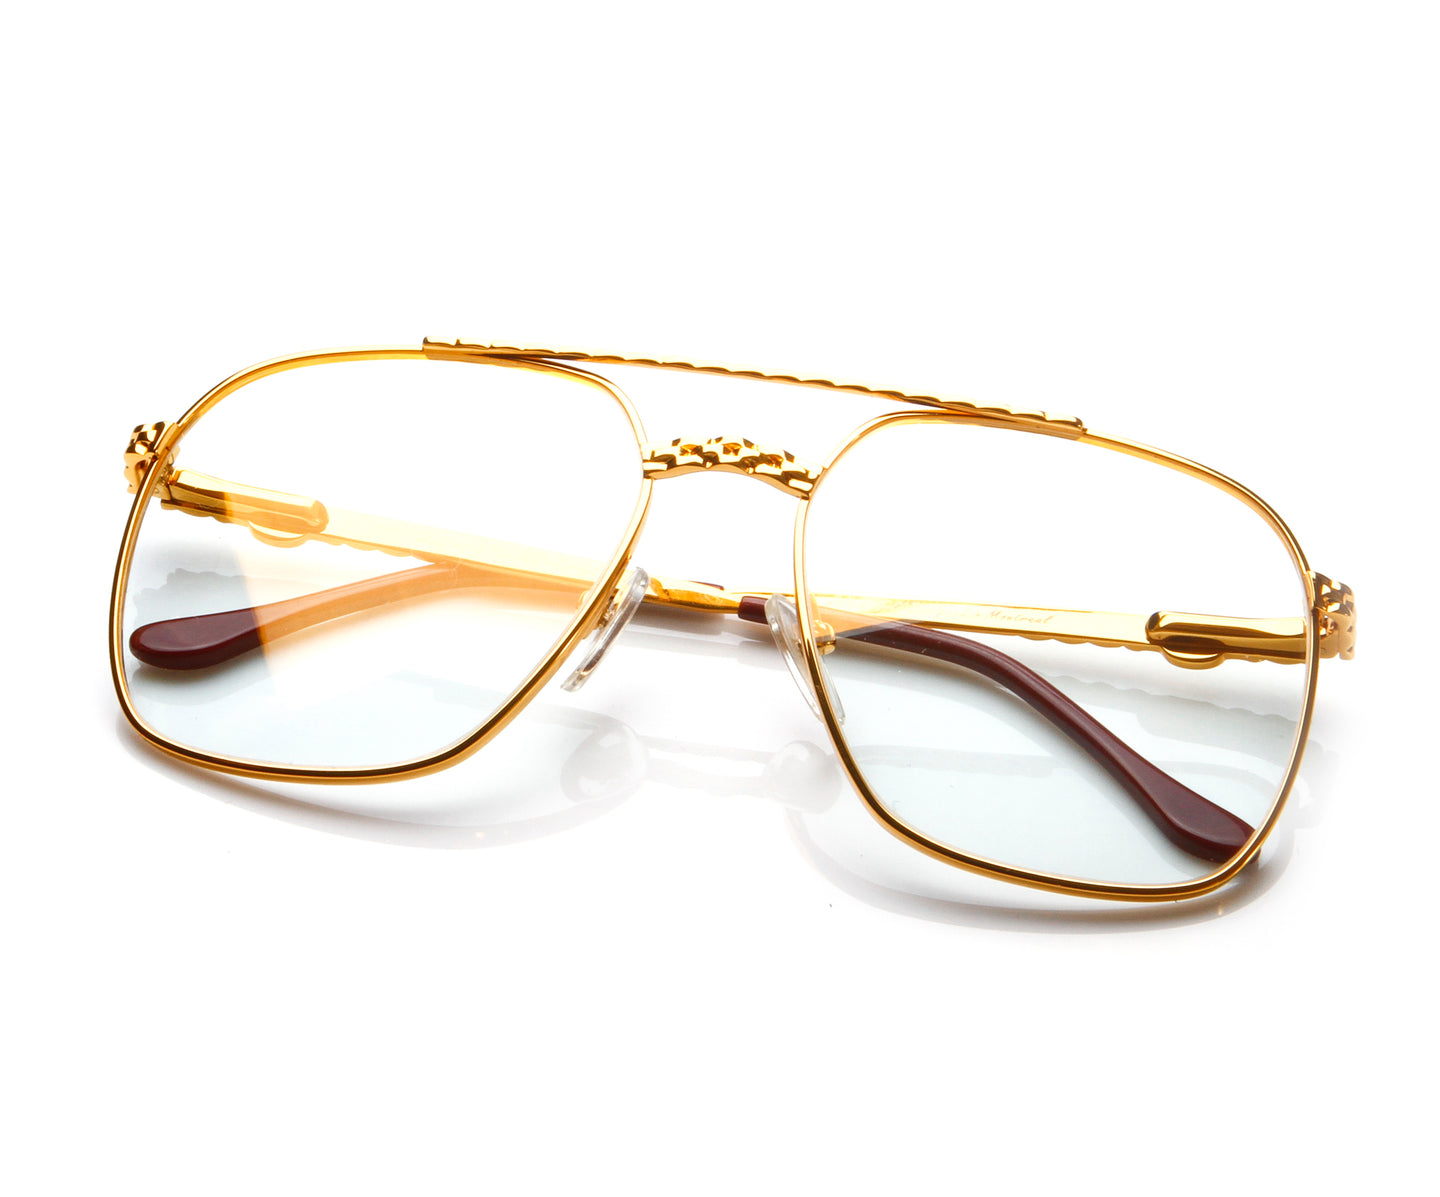 VF XL Masterpiece 24KT Gold (Clear Flash Gold) Thumbnail, VF Masterpiece , glasses frames, eyeglasses online, eyeglass frames, mens glasses, womens glasses, buy glasses online, designer eyeglasses, vintage sunglasses, retro sunglasses, vintage glasses, sunglass, eyeglass, glasses, lens, vintage frames company, vf